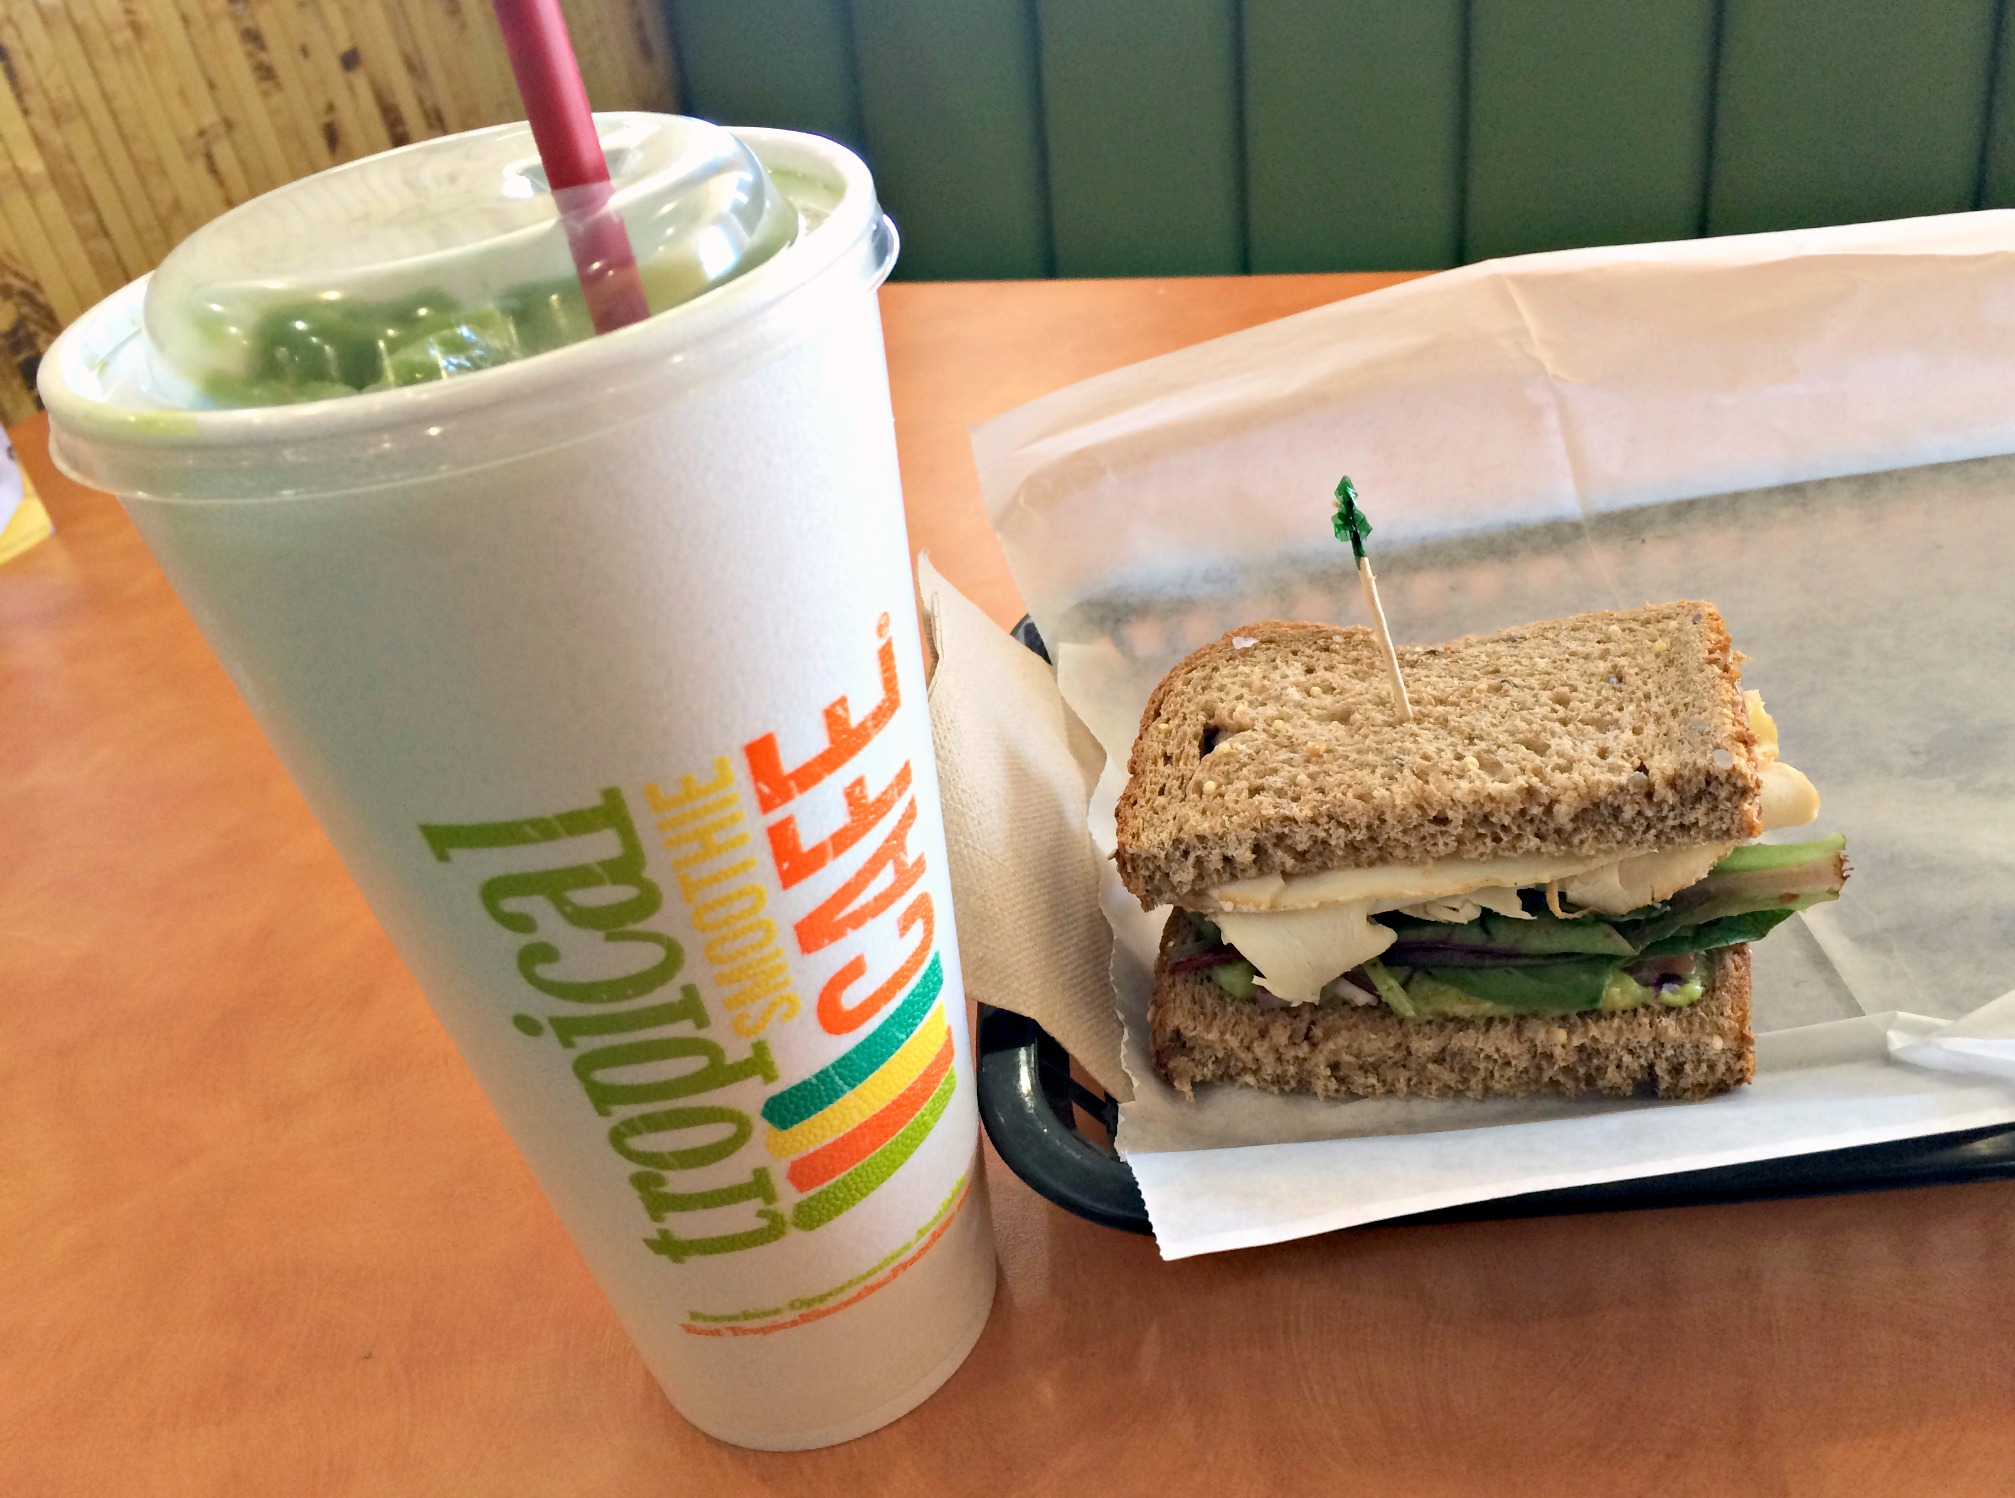 tropical smoothie avocolada smoothie and turkey guacamole sandwich